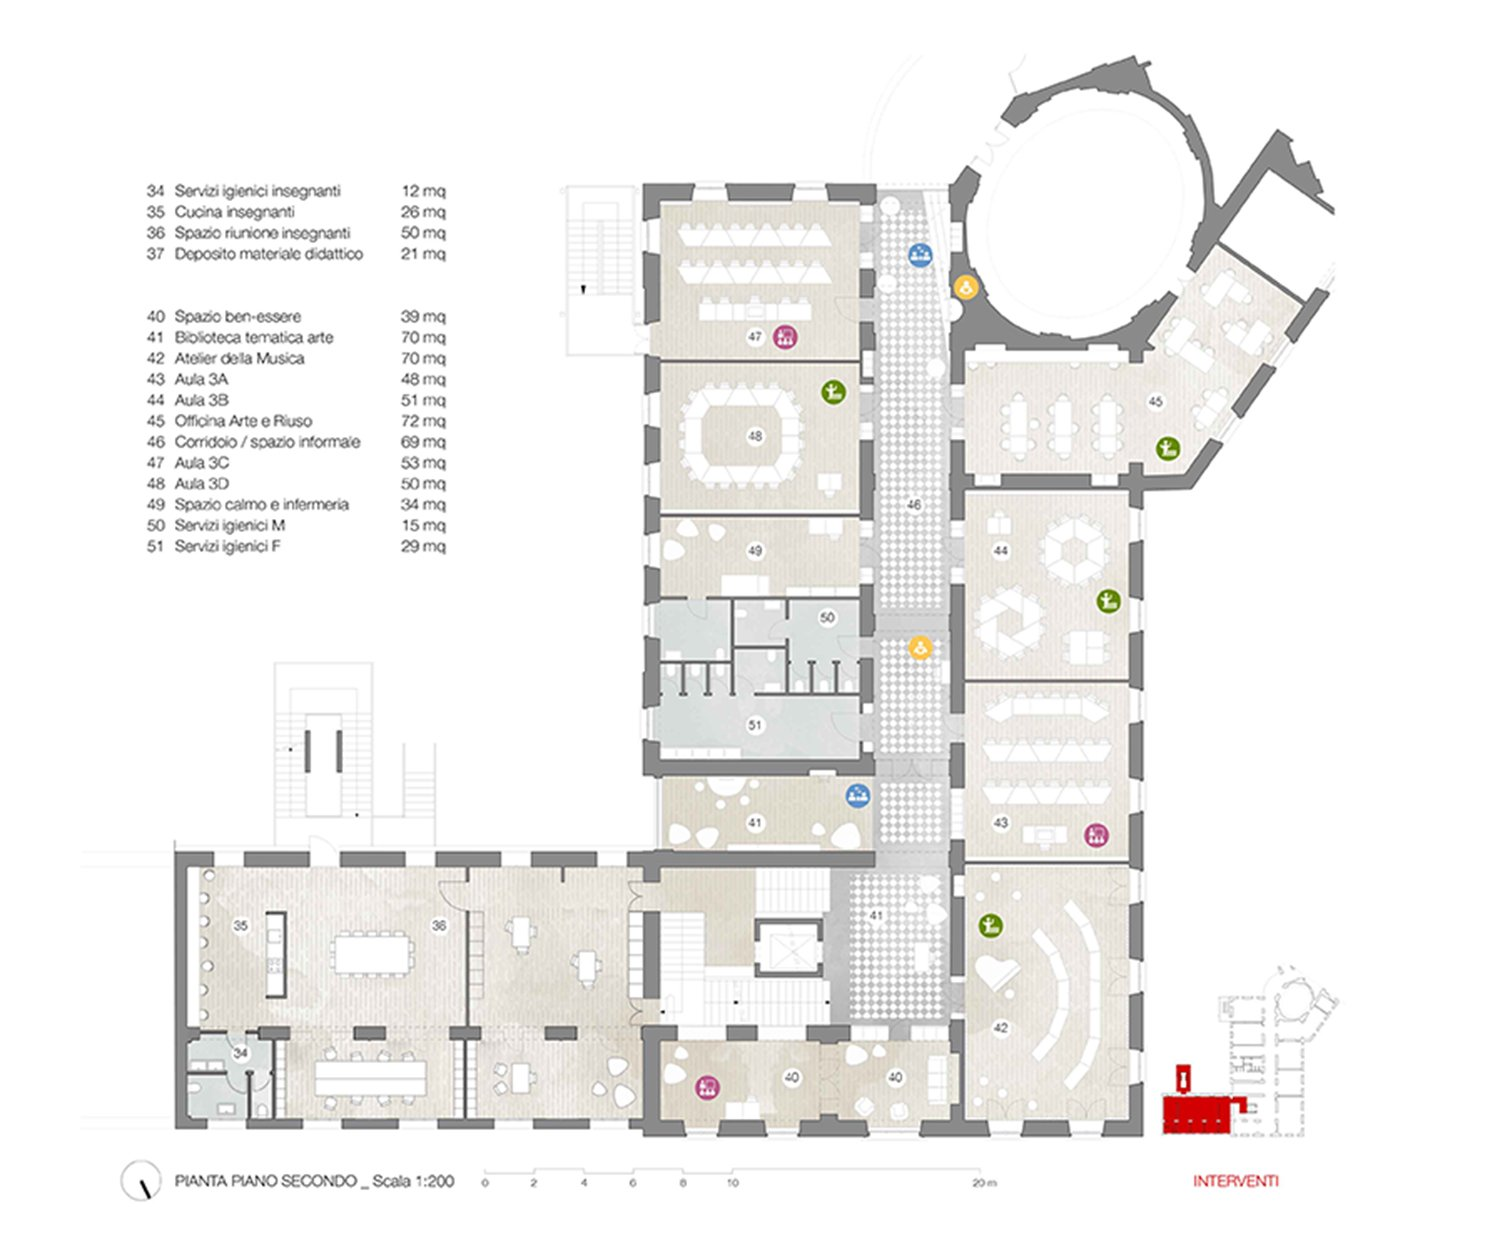 Second floor plan Archisbang+Areaprogetti}